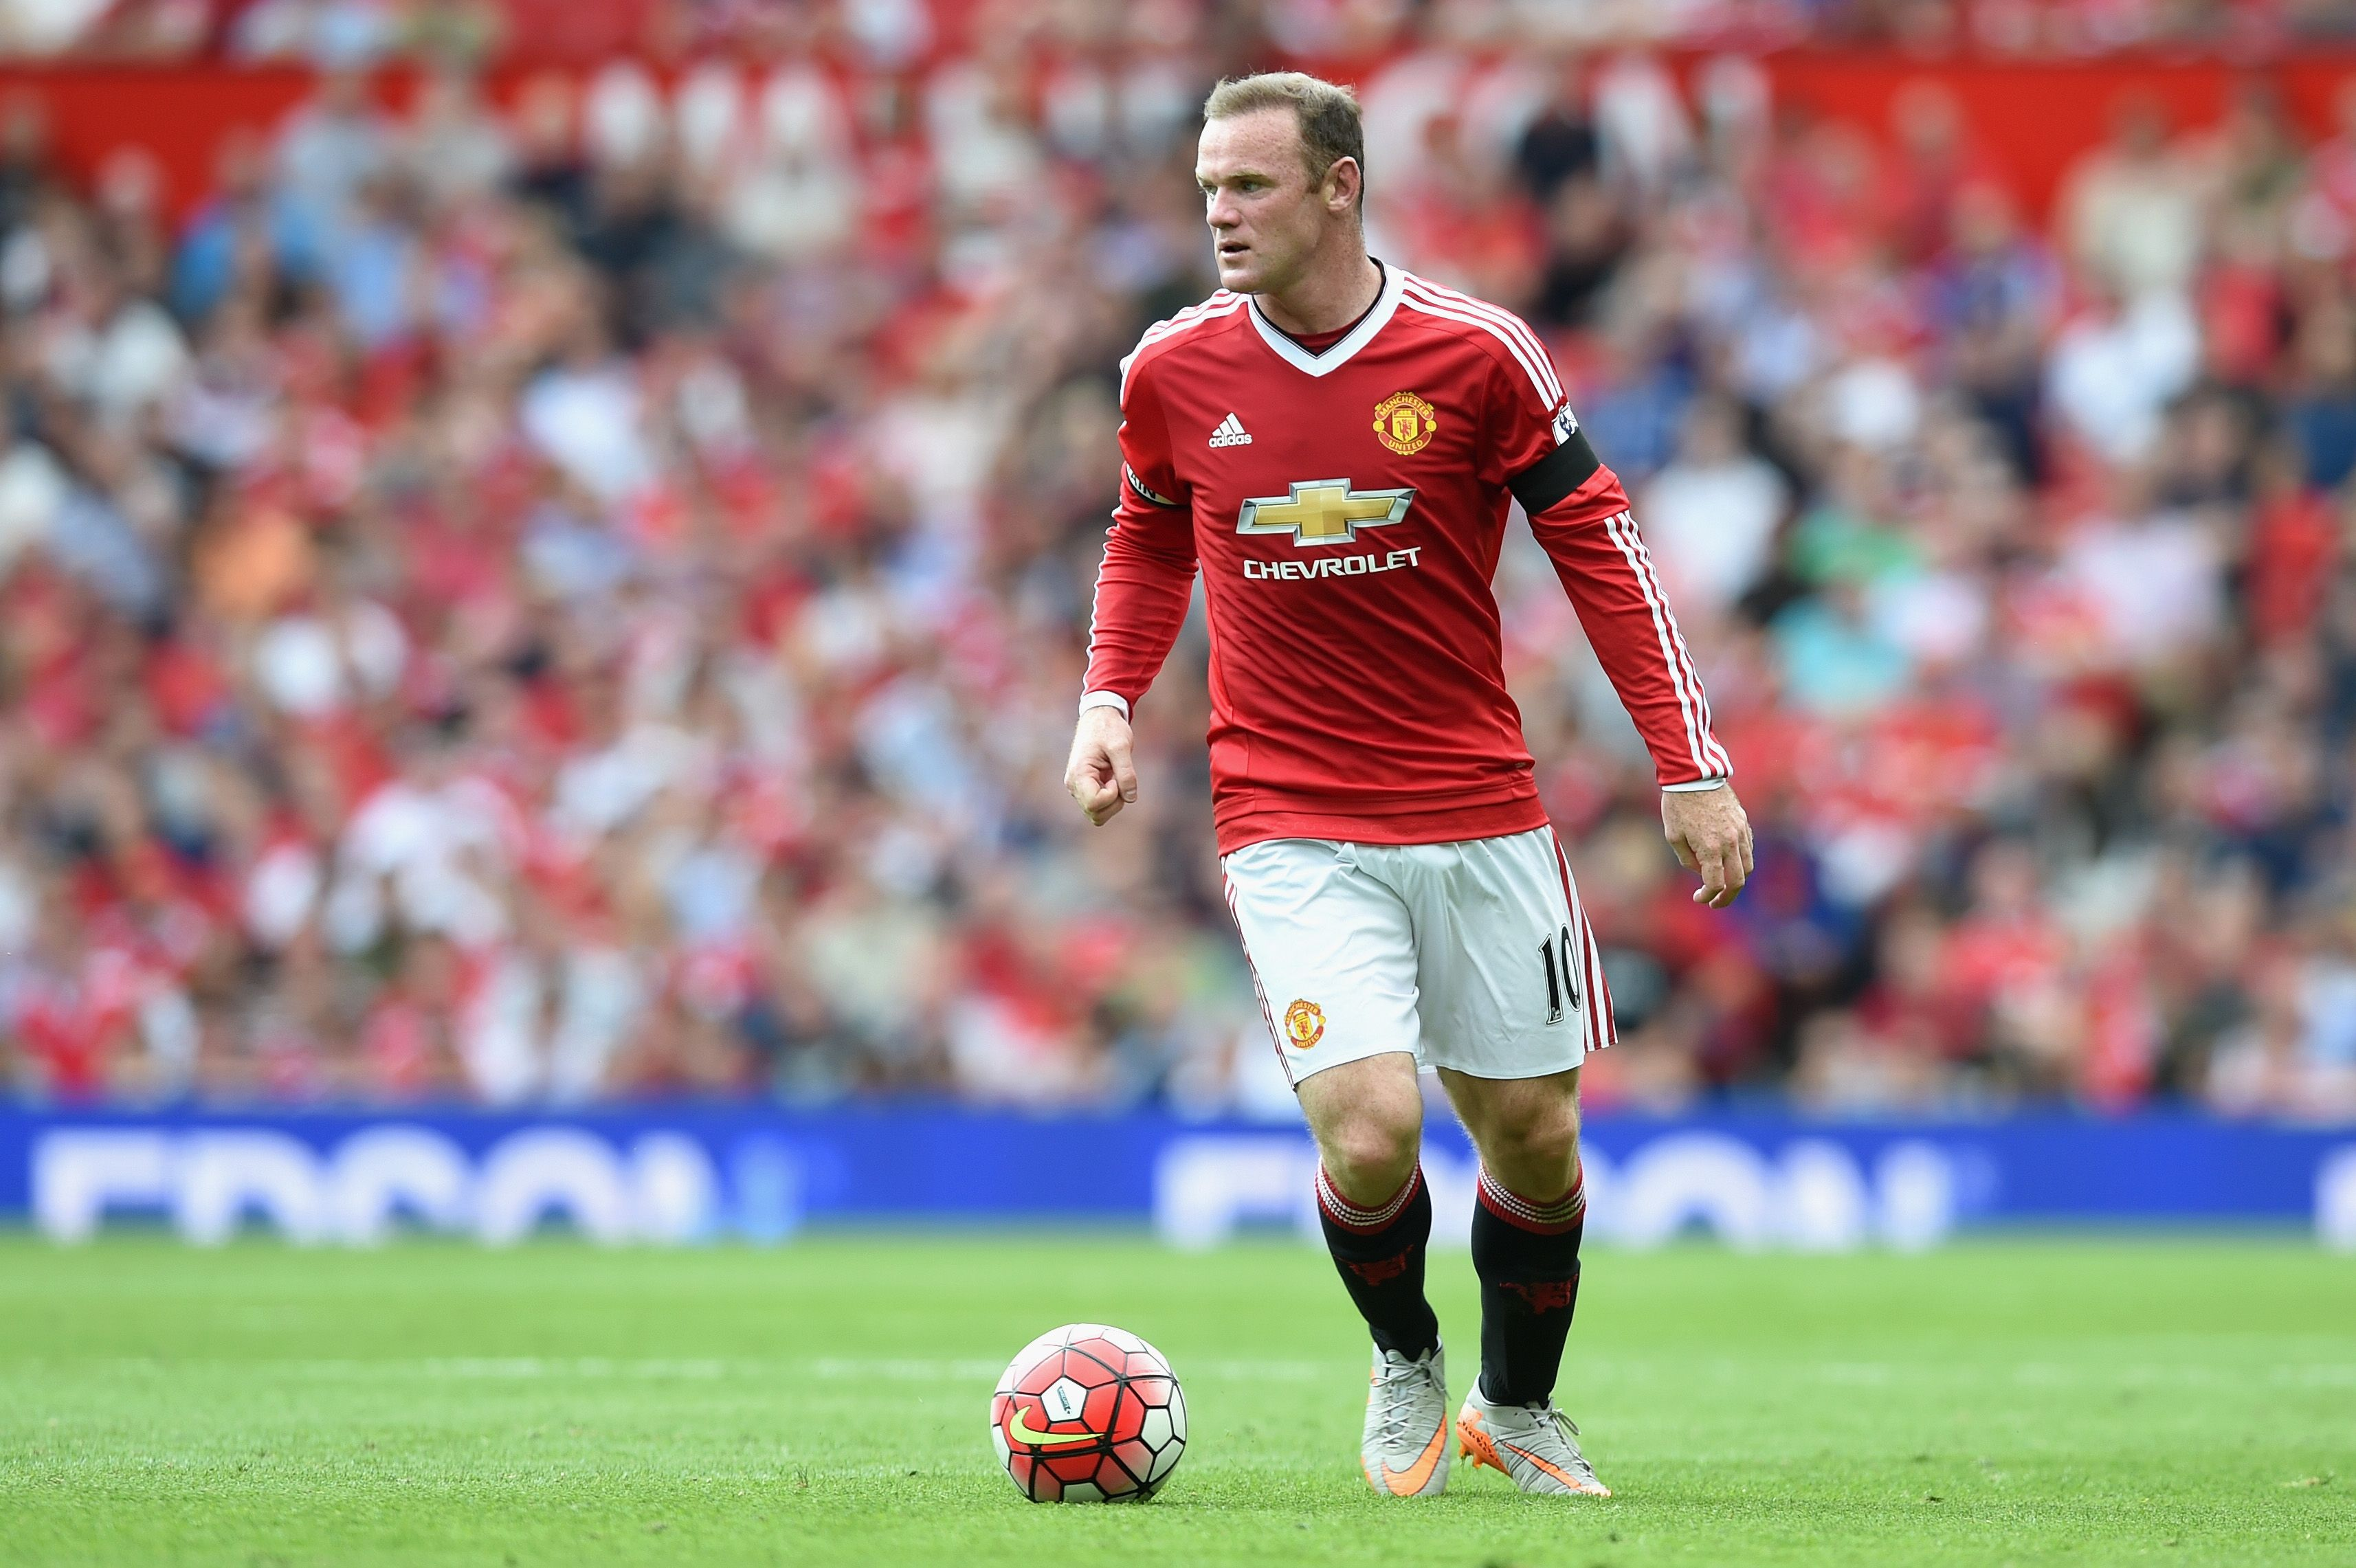 bab6b7e0012 Wayne Rooney captaining United in his first adidas kit.